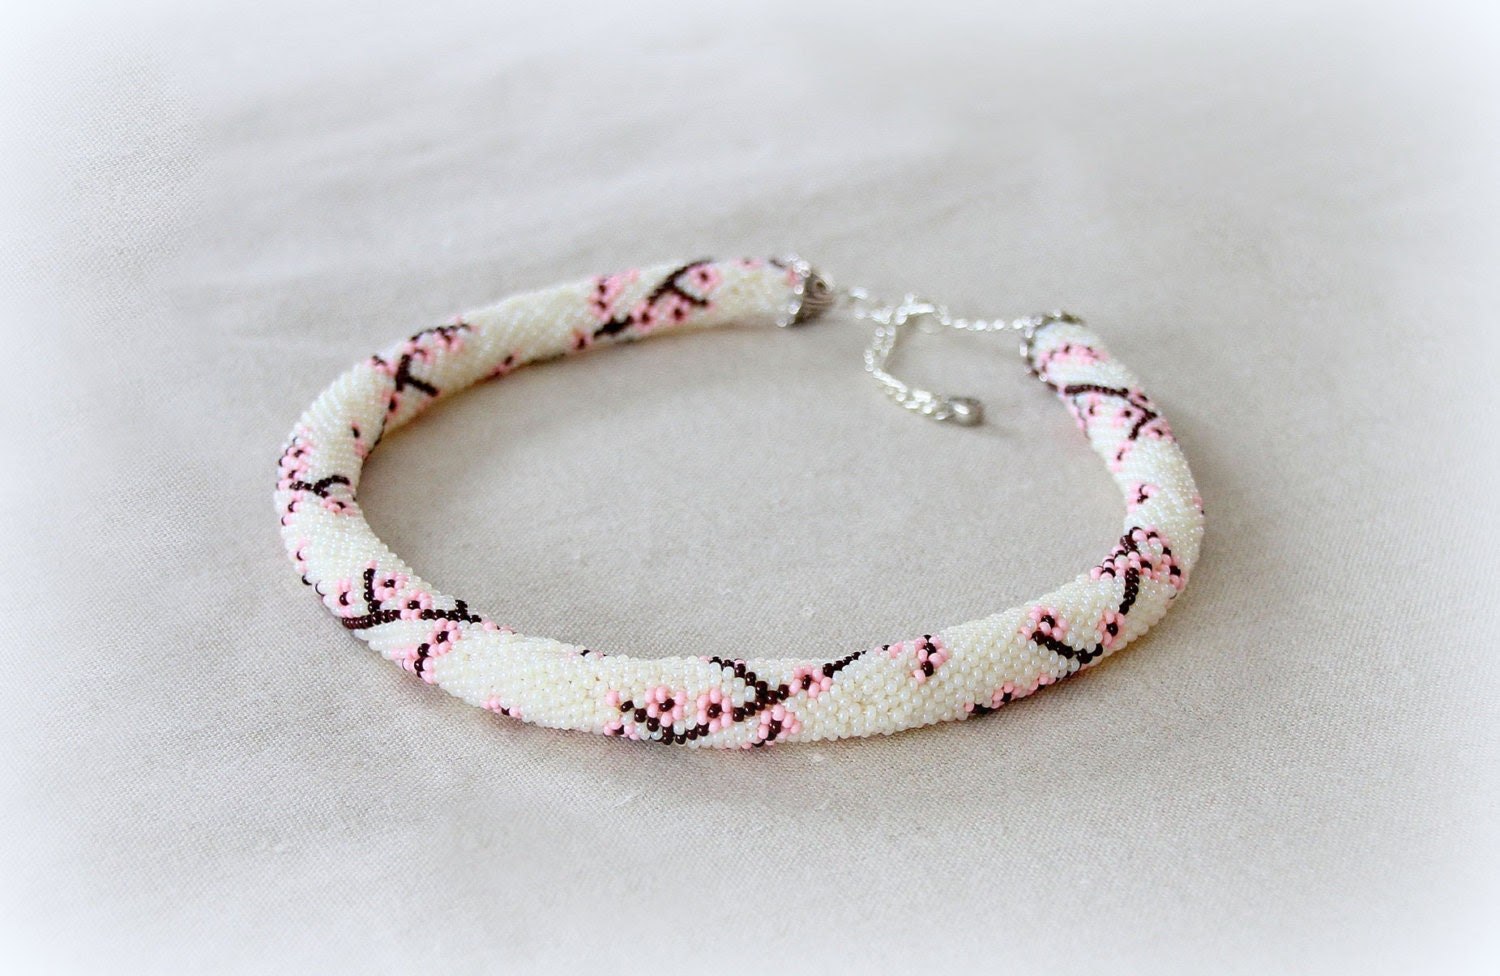 Bead Crochet Necklace sakura ,  pink and white,  Minimalist, Japanese motifs, flower necklace - Nikita551